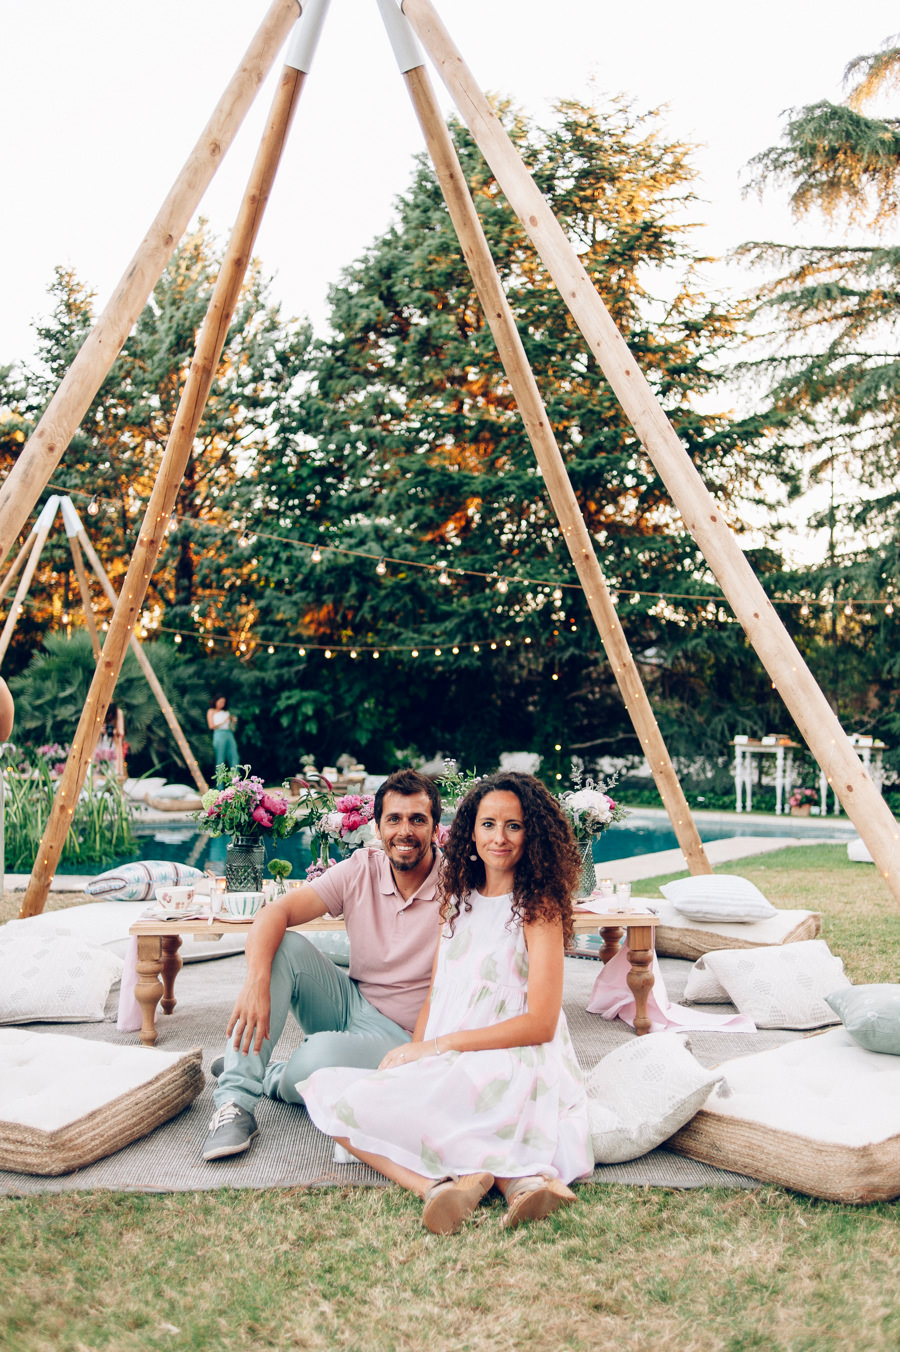 zona chill out cojines suelo tipis 9